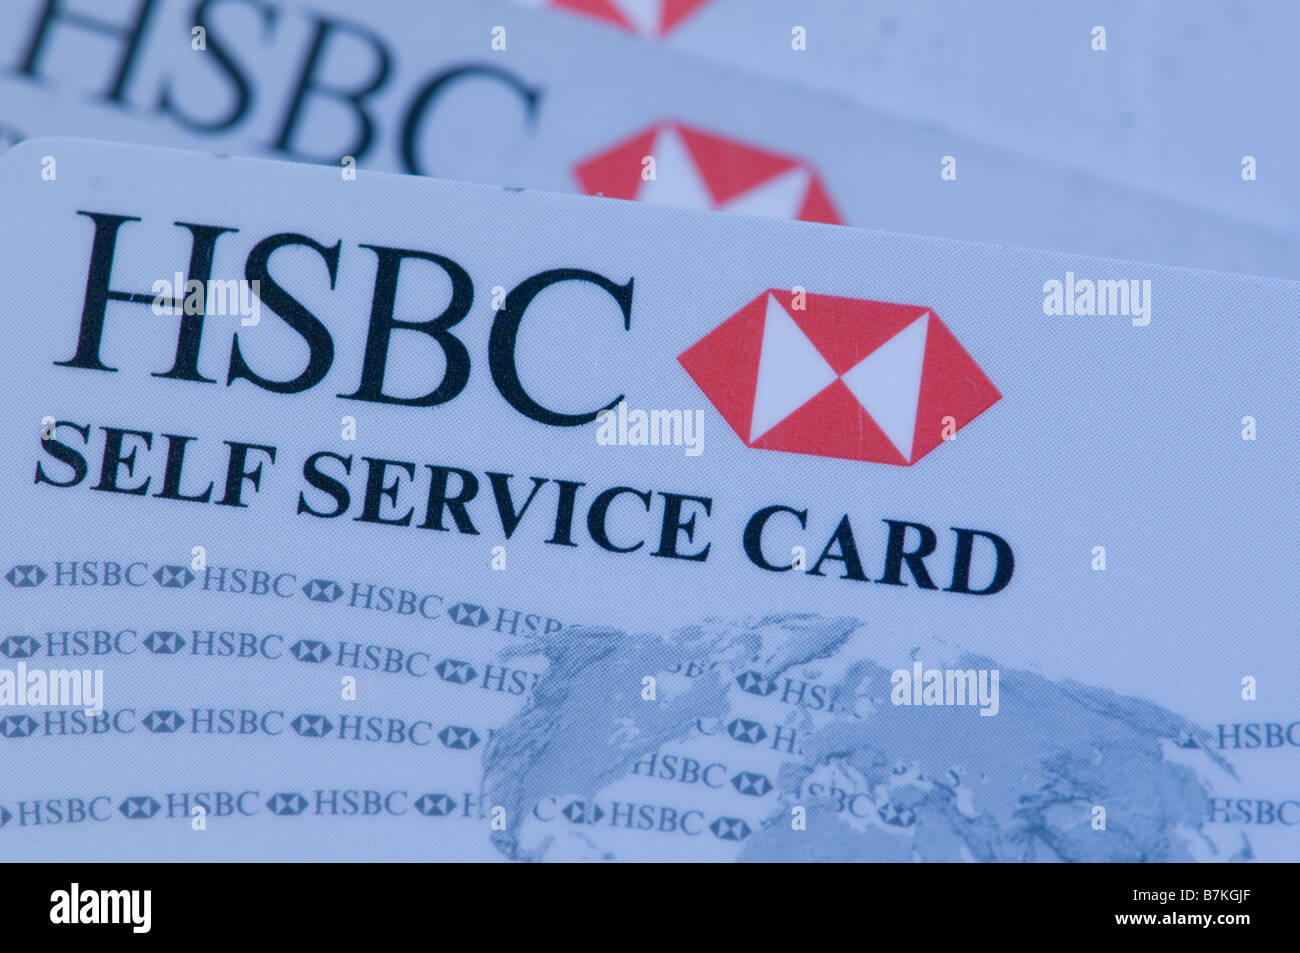 Debit cards stock photos debit cards stock images alamy hsbc bank self service atm and debit cards uk stock image thecheapjerseys Gallery